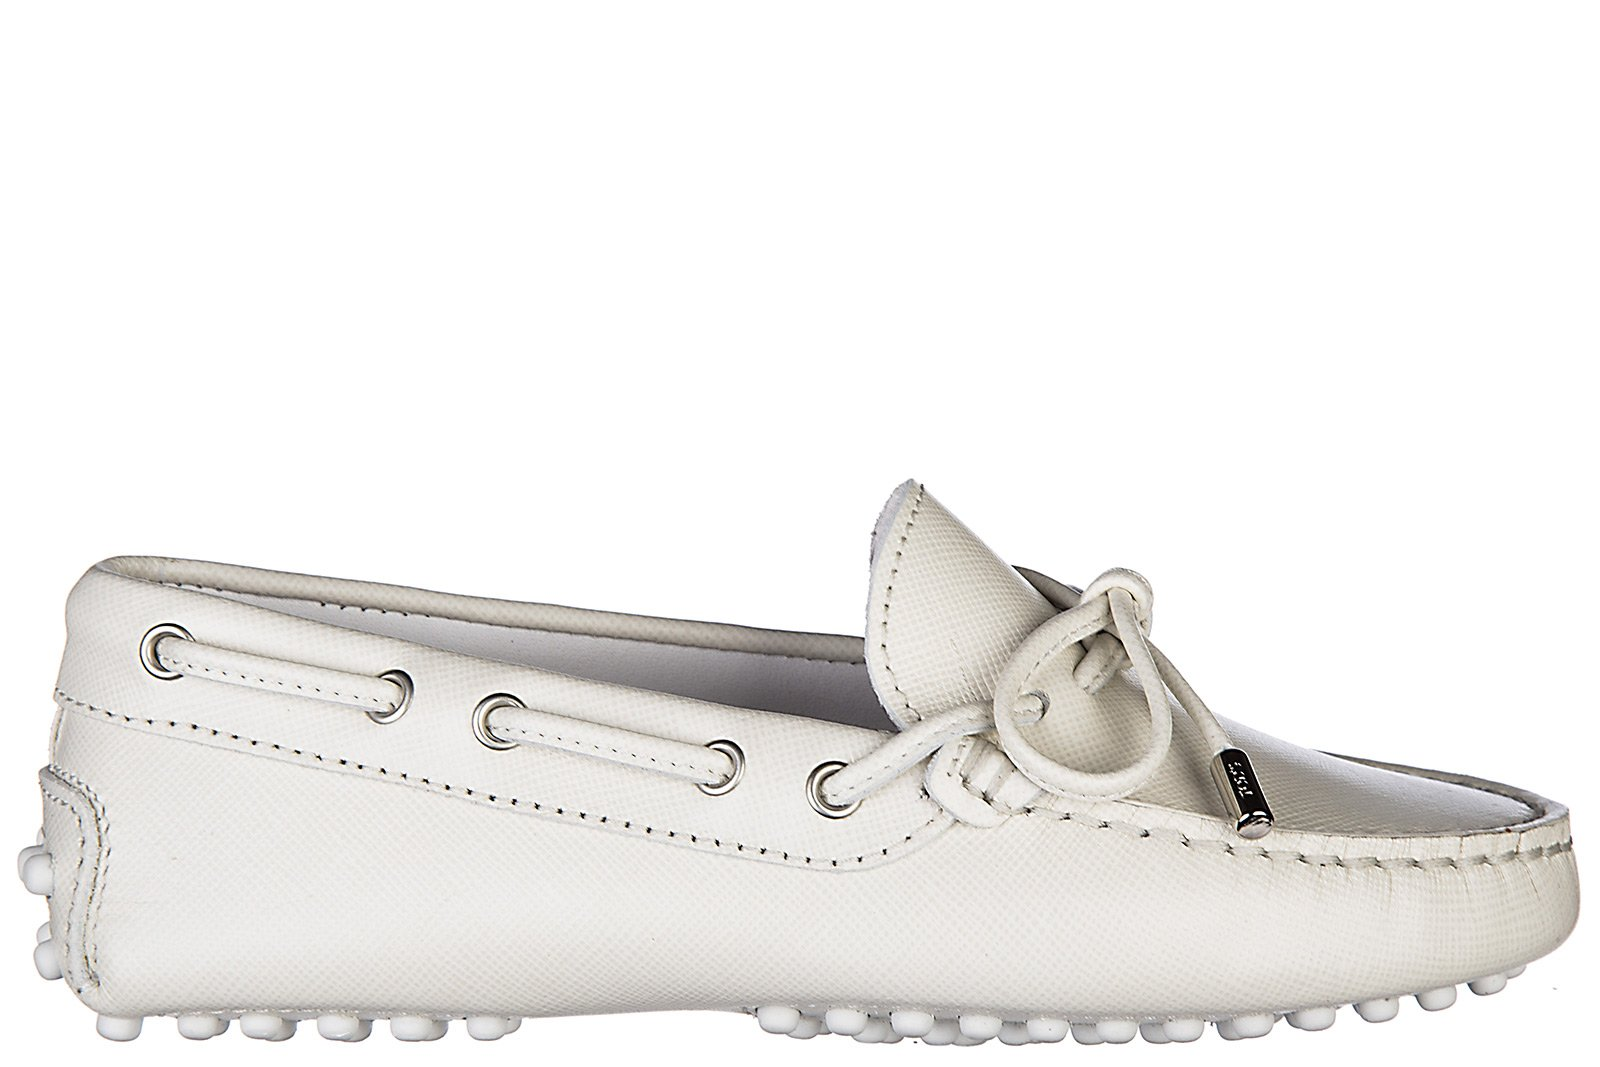 Tod's Boys Shoes Baby Child Loafers Moccassins Leather leccetto occhielli gommini Junior White US Size 13 UXC00G050307Y9C0